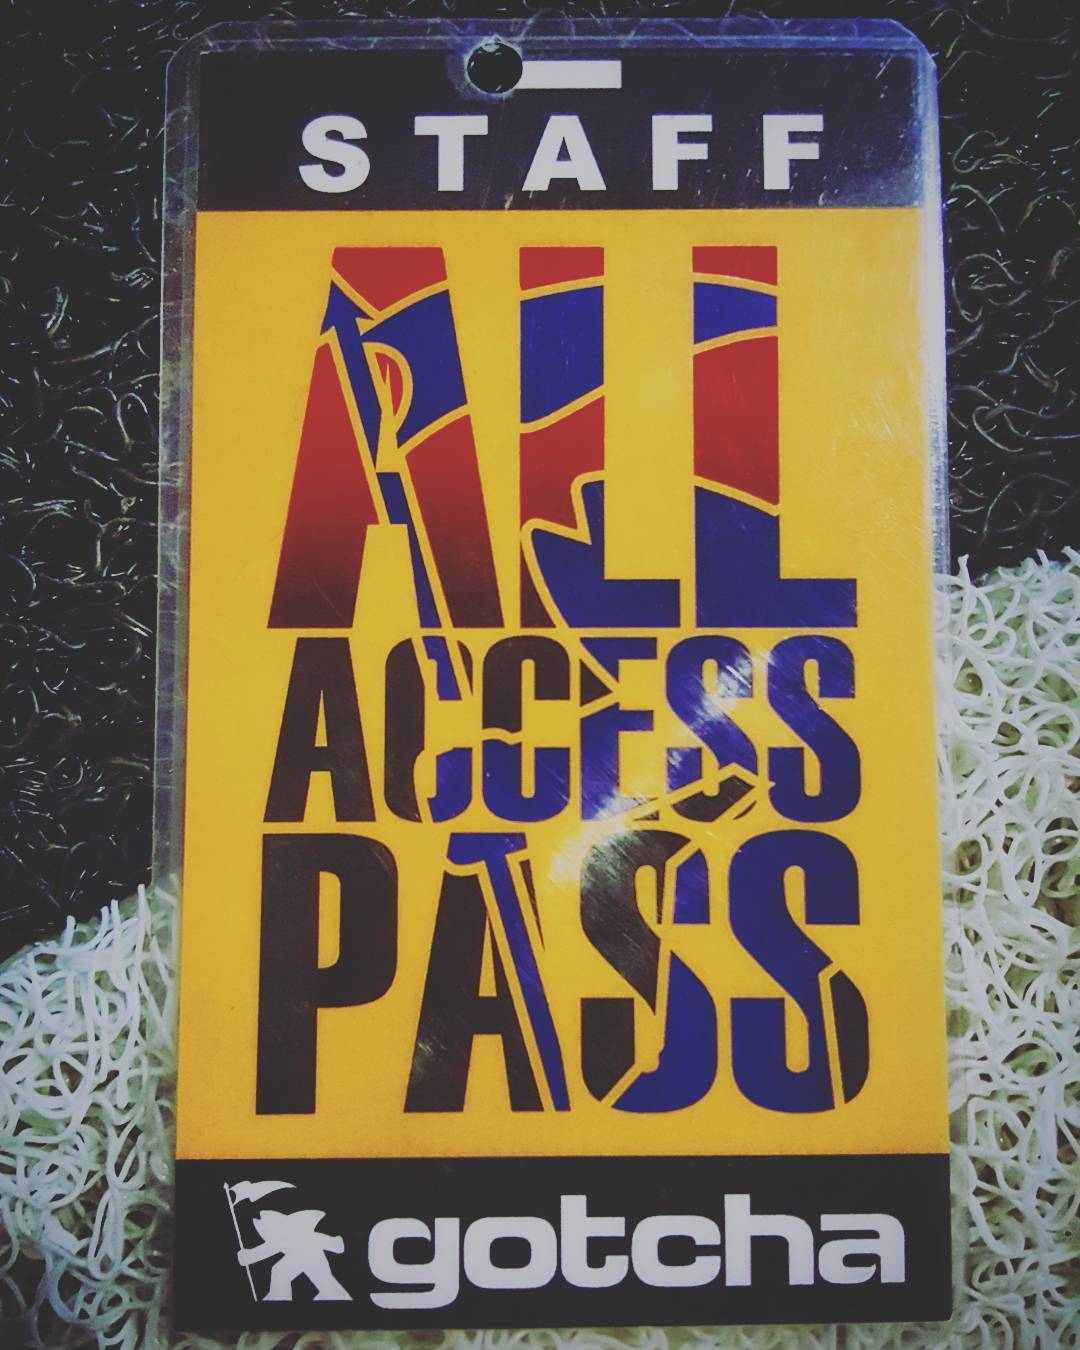 ALL ACCESS gotcha #backstagepasses  #iconsneverdie